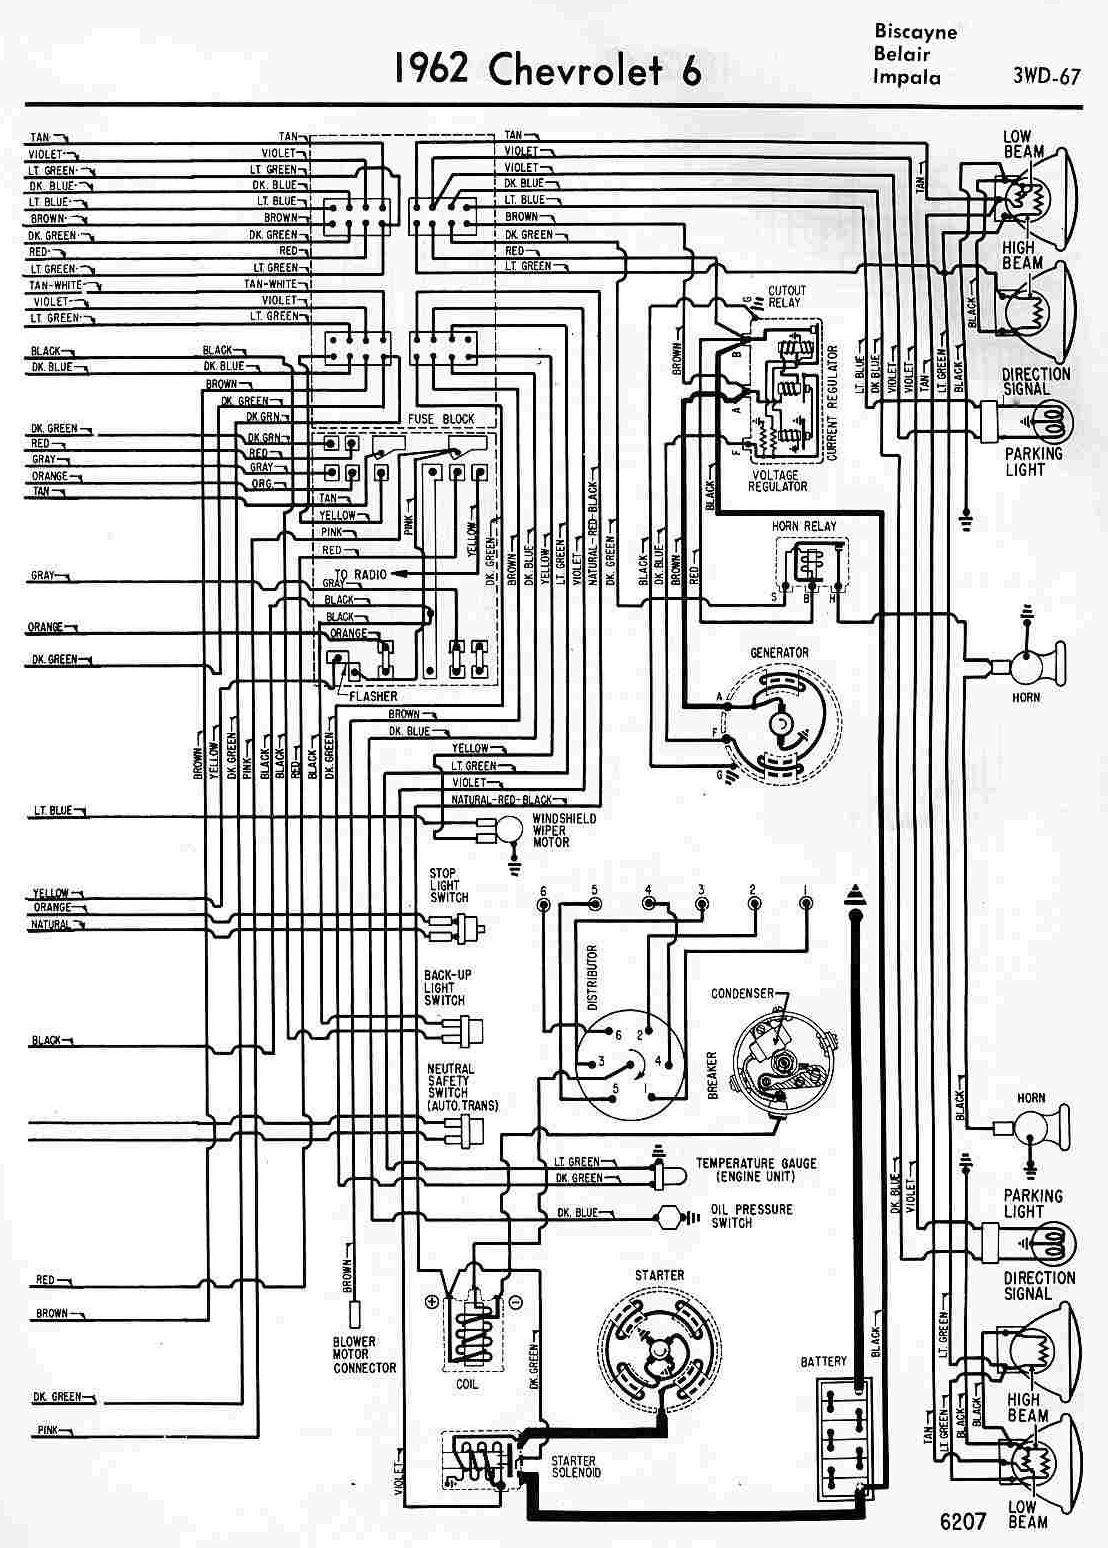 1966 Chevy Impala 327 Starter Wiring Diagram Libraries 1950 Dodge